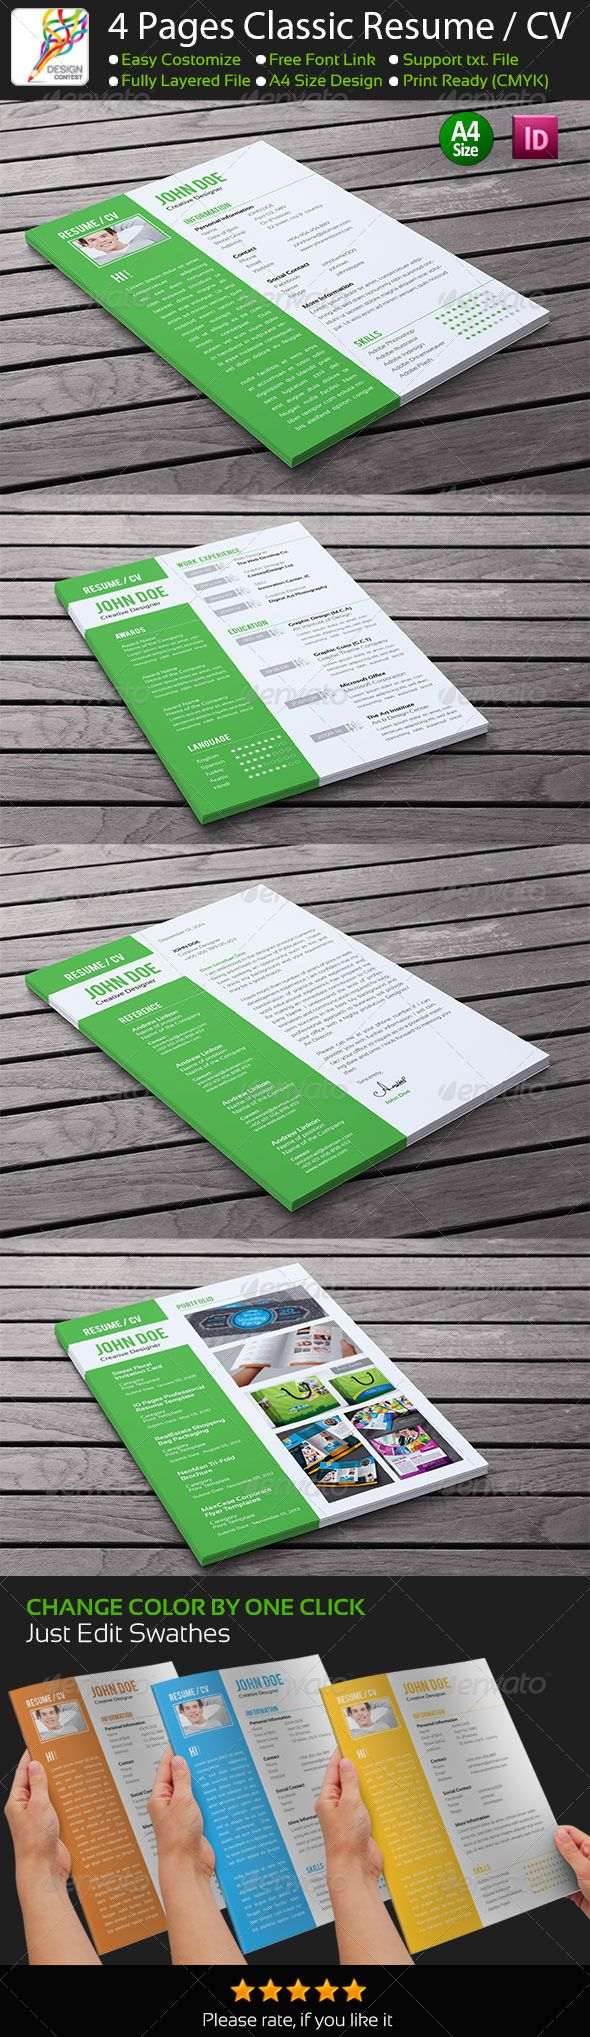 Buy 4 Pages Classic InDesign Resume by